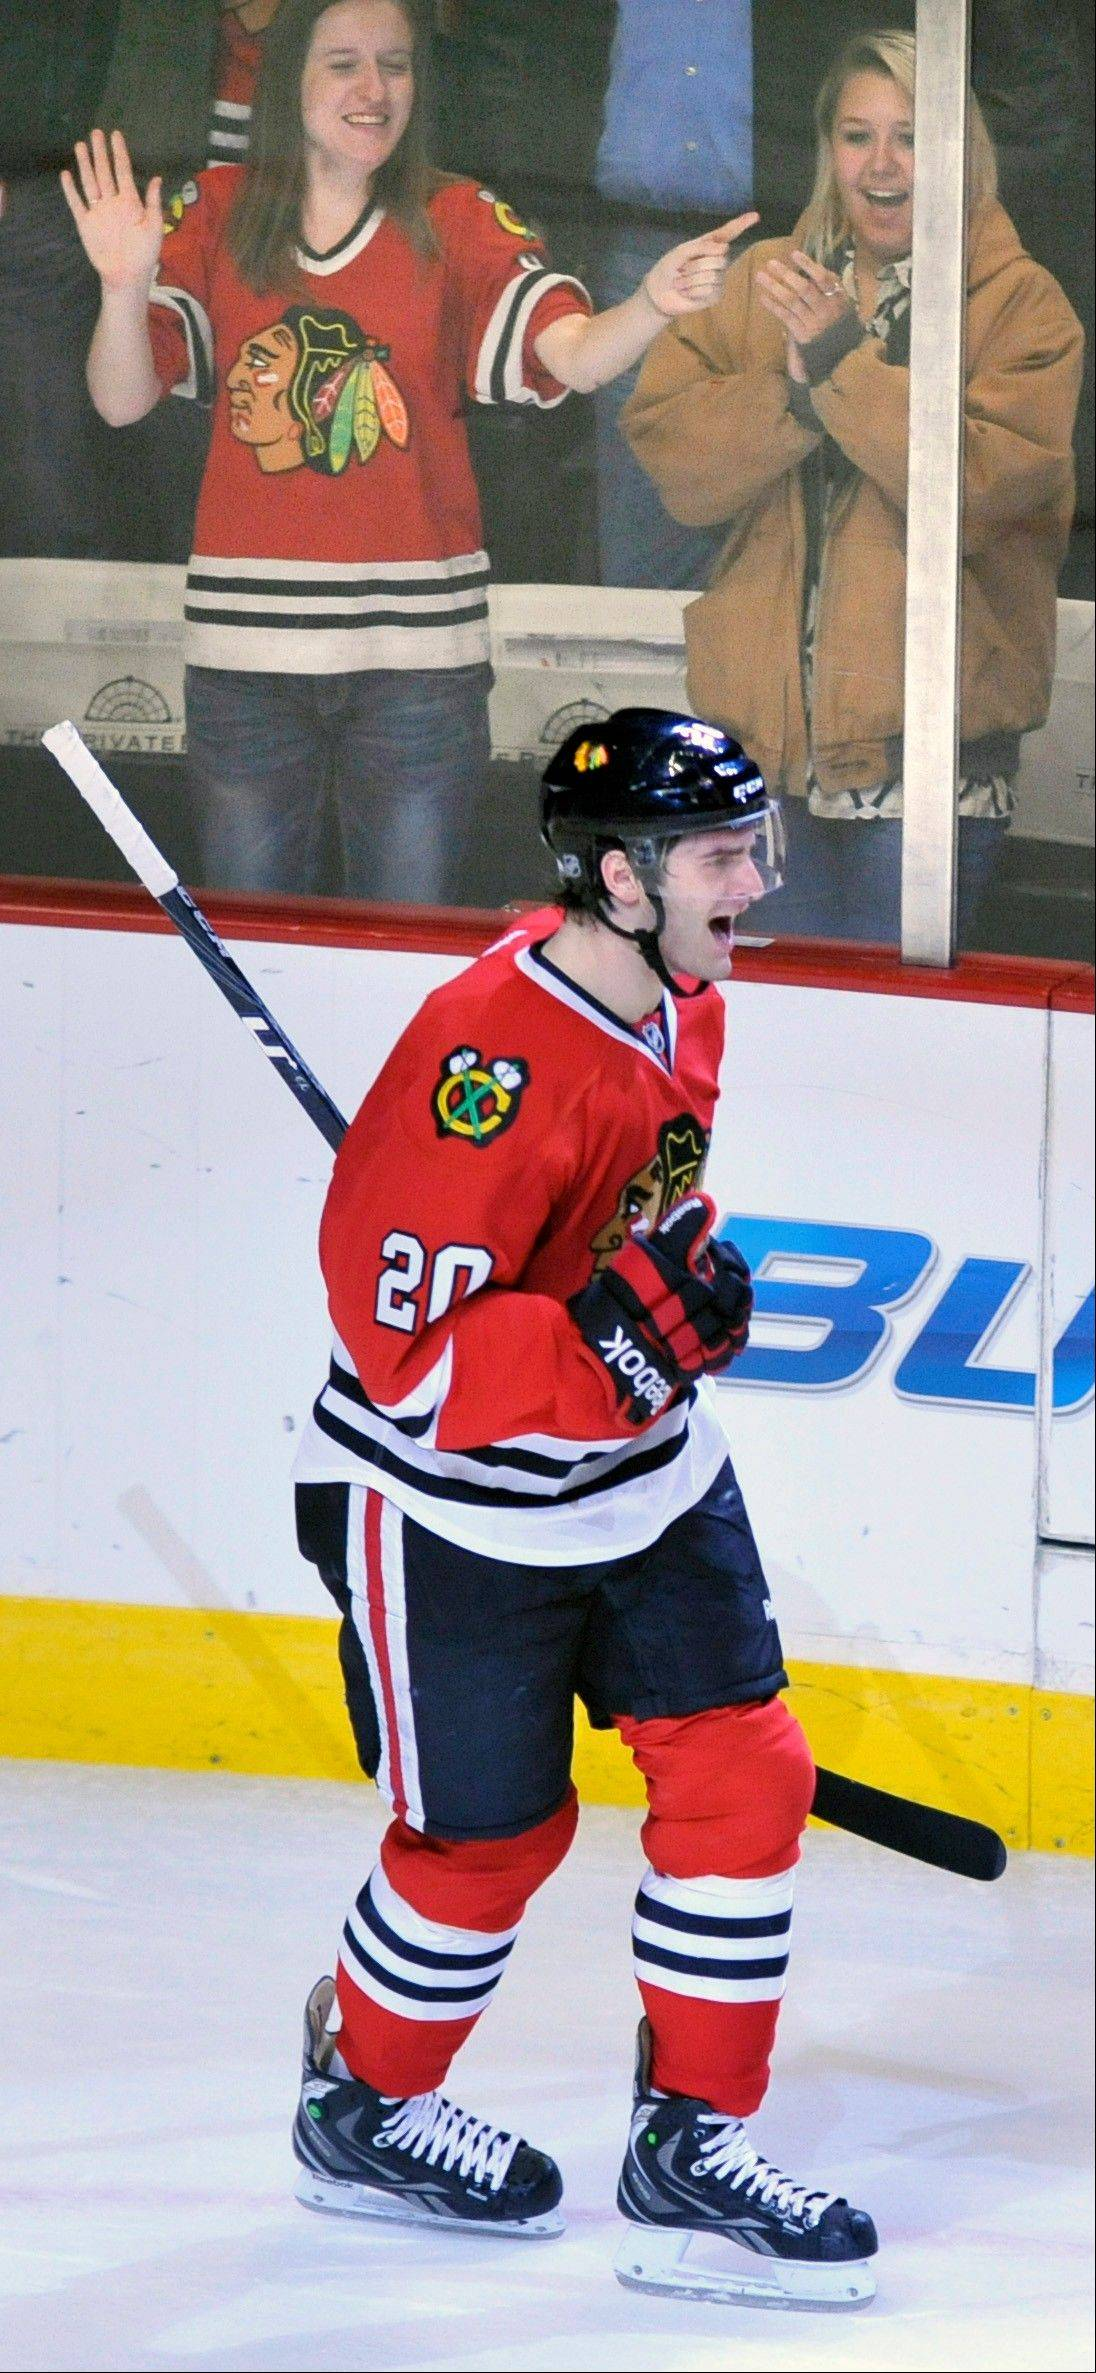 Brandon Saad celebrates after scoring the winning goal against the Detroit Red Wings during a shootout in an NHL hockey game in Chicago, Friday, April 12, 2013. Chicago won 3-2.